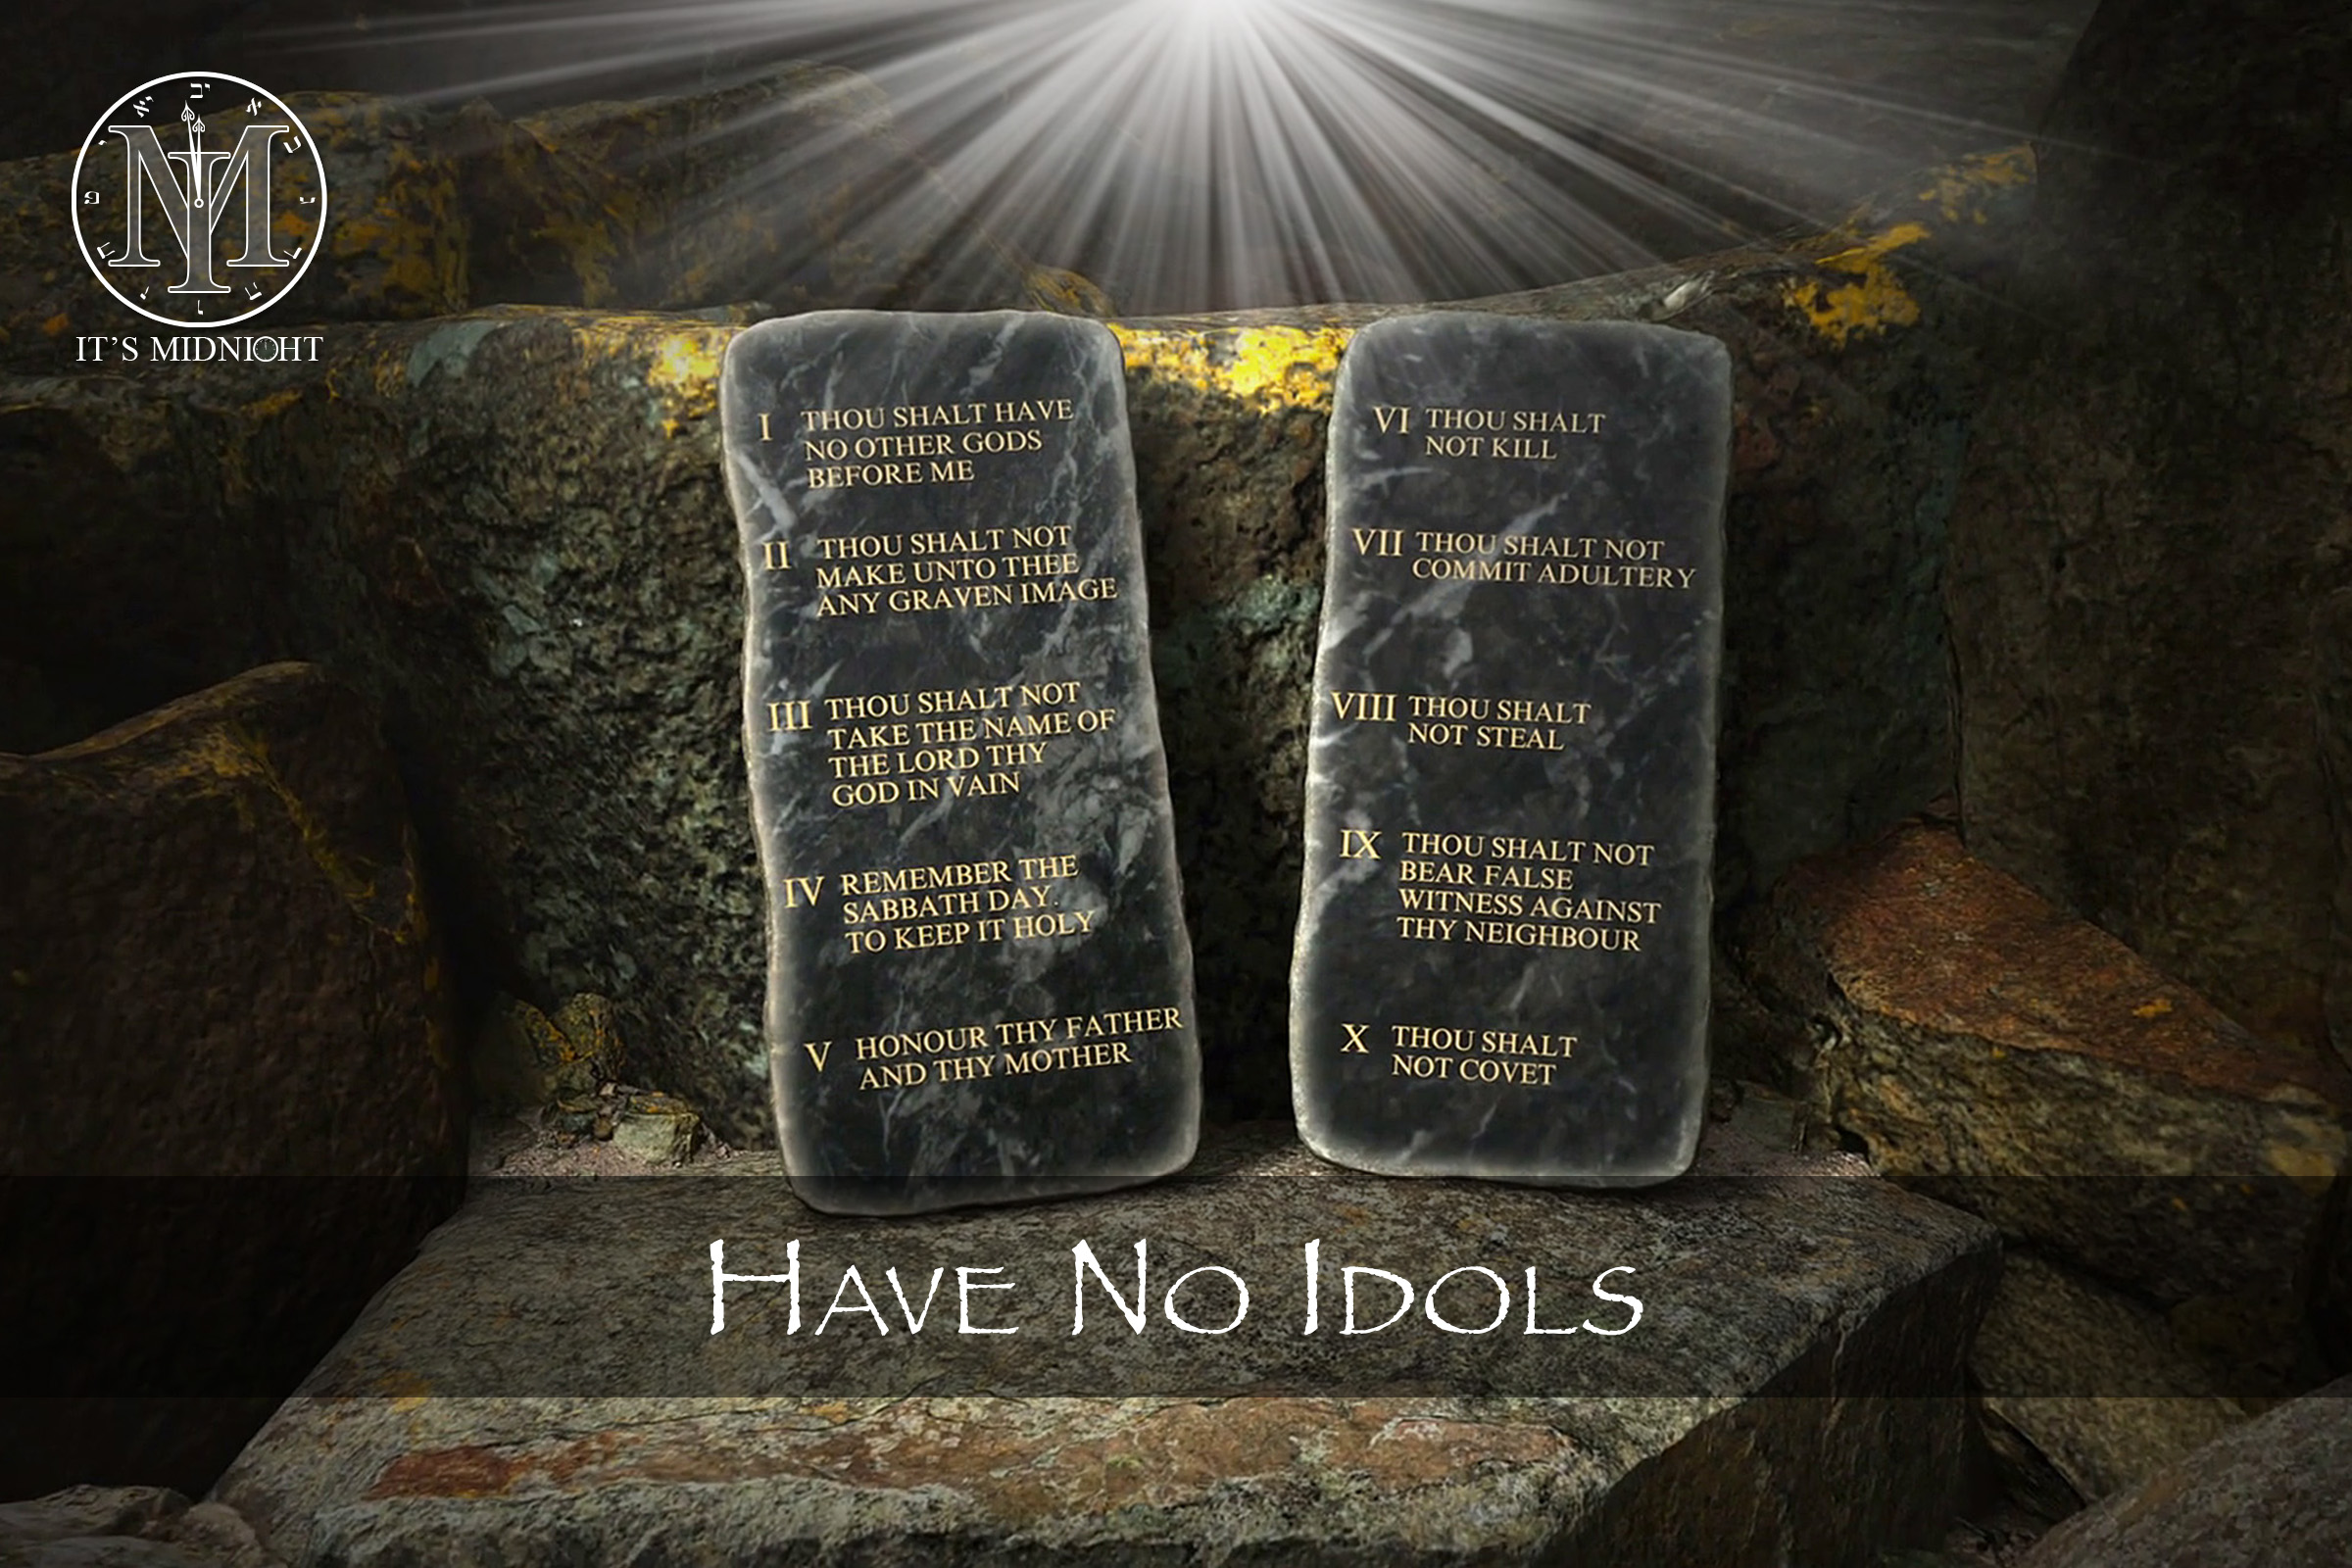 2nd Commandment: Have No Idols